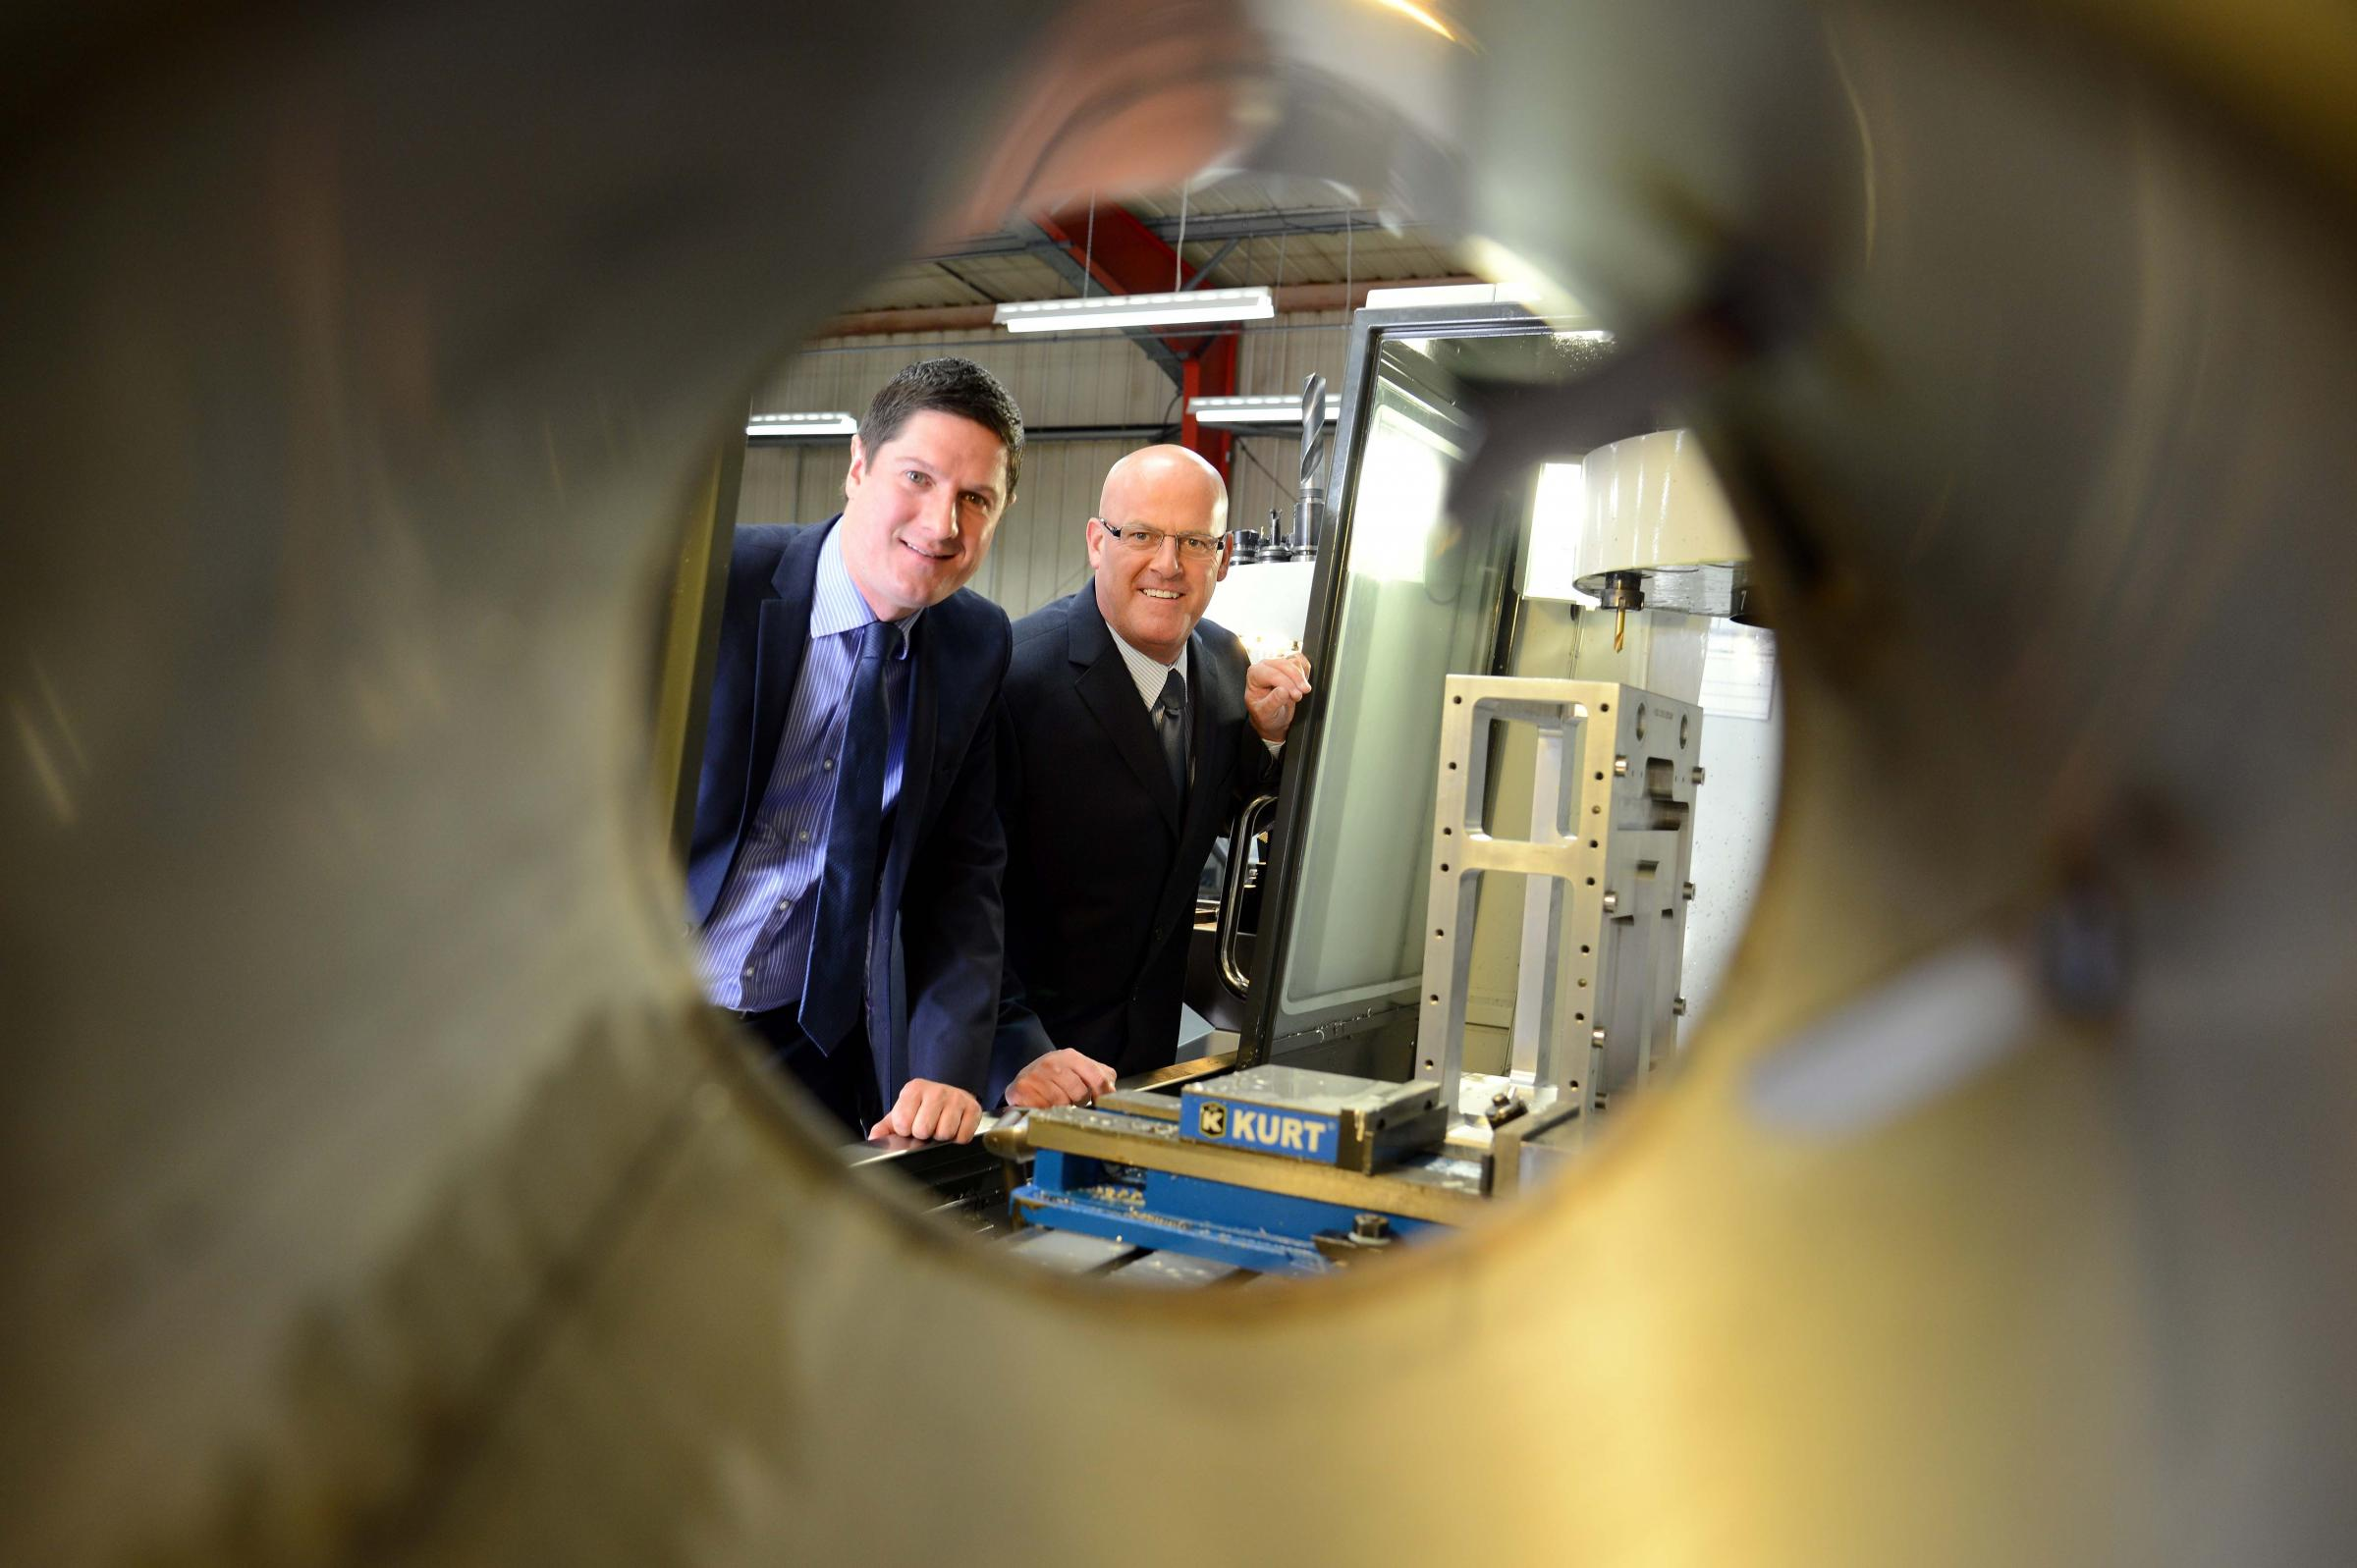 AMBITIOUS PLANS: Matthew Elliott (left), Barclays relationship director, with Peter Coates, managing director of Durham Precision Engineering